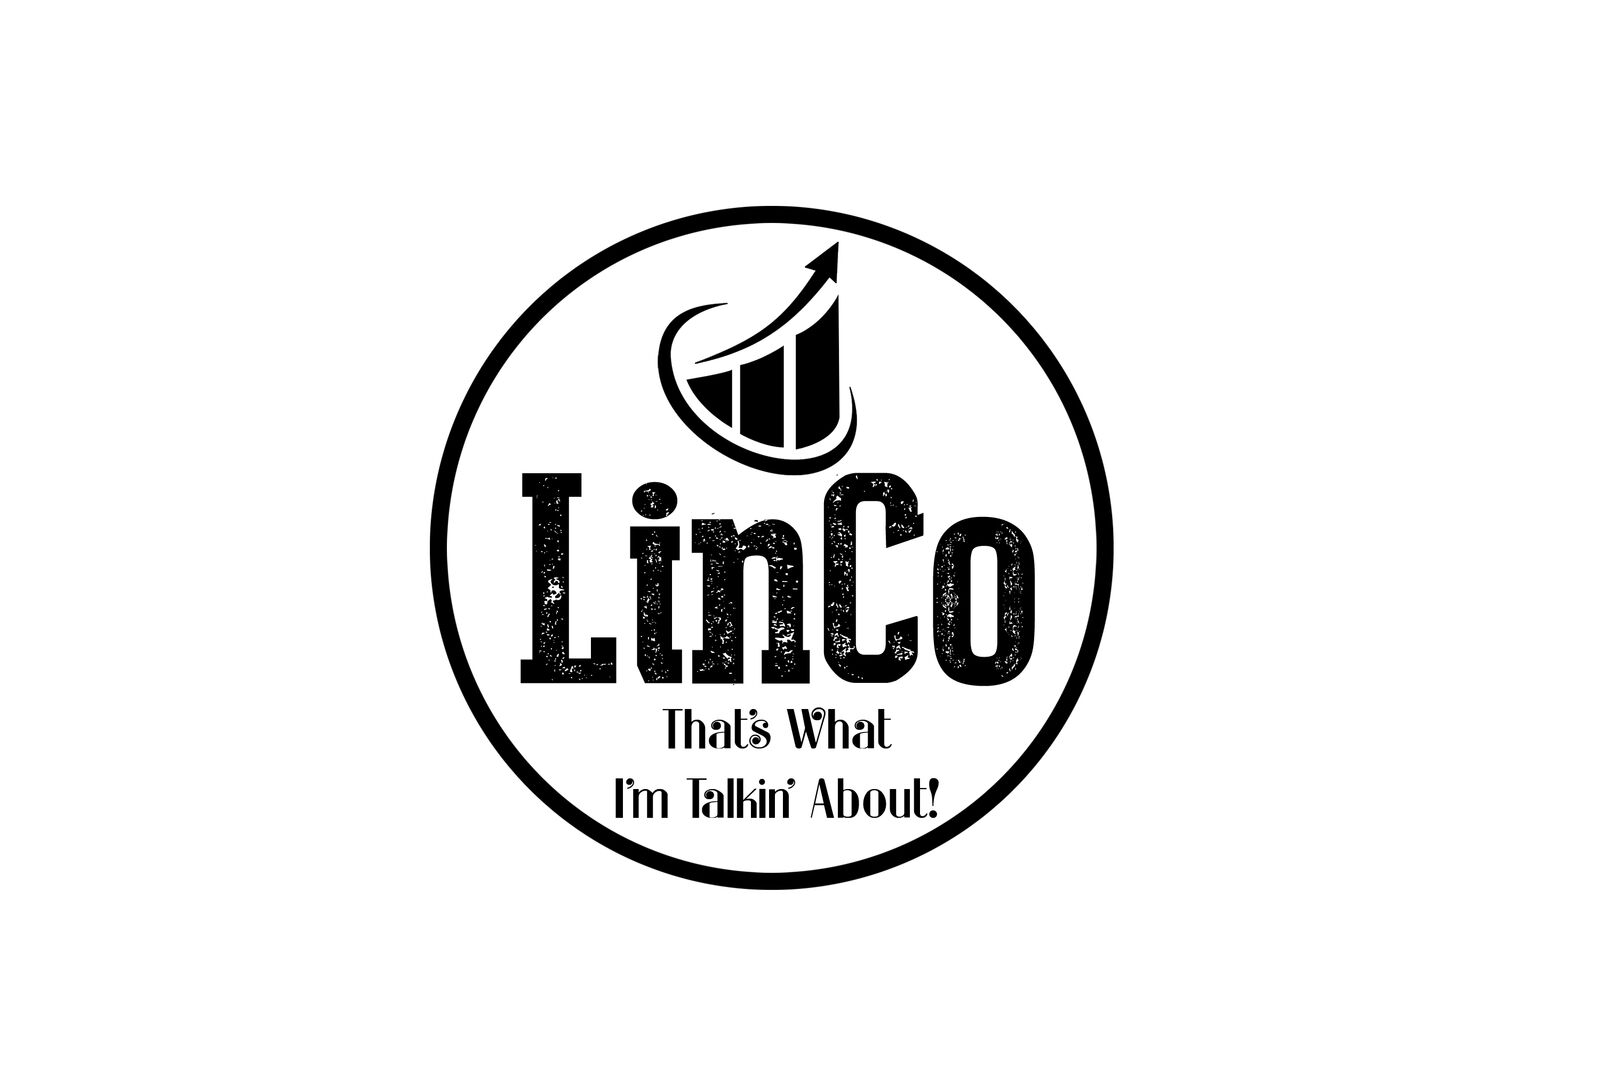 LINCO Products1